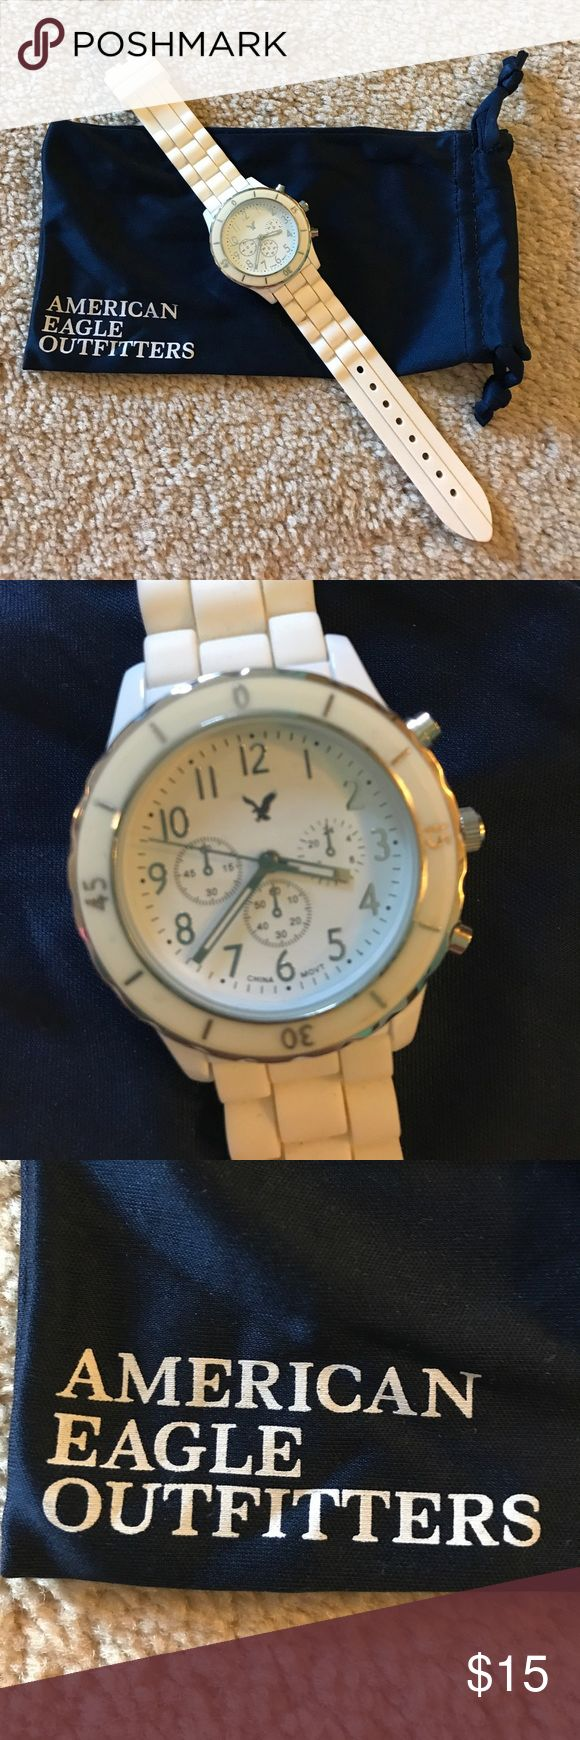 American Eagle Watch Adorable rubber, woven, white watch! Very simple yet stylish and perfect for everyday wear! American Eagle Outfitters Accessories Watches